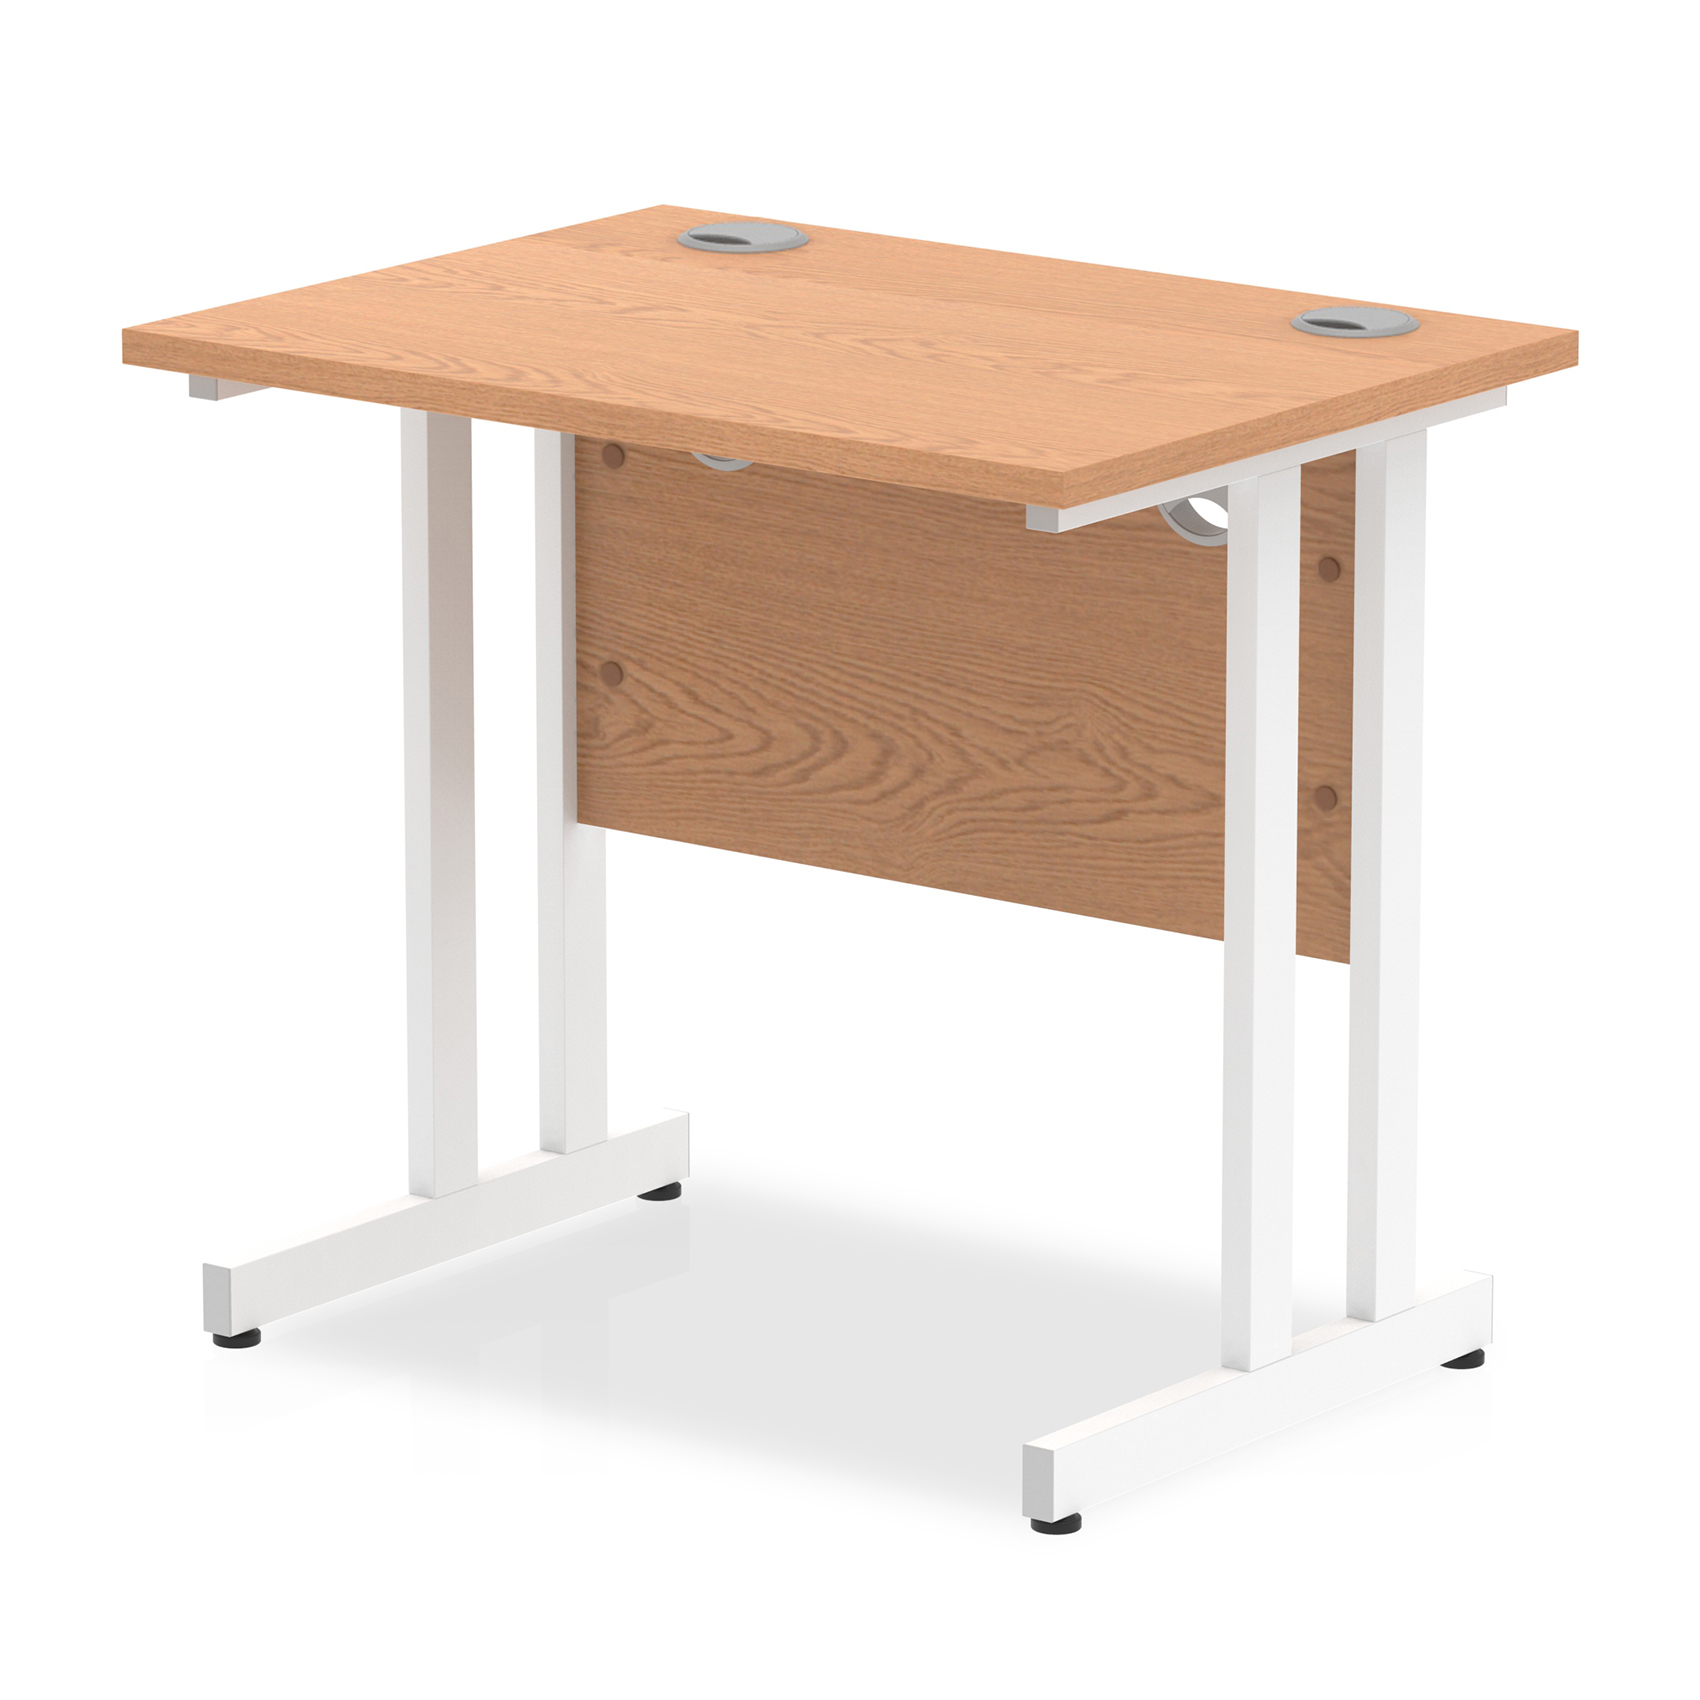 Trexus Desk Rectangle Cantilever White Leg 800x600mm Oak Ref MI002905